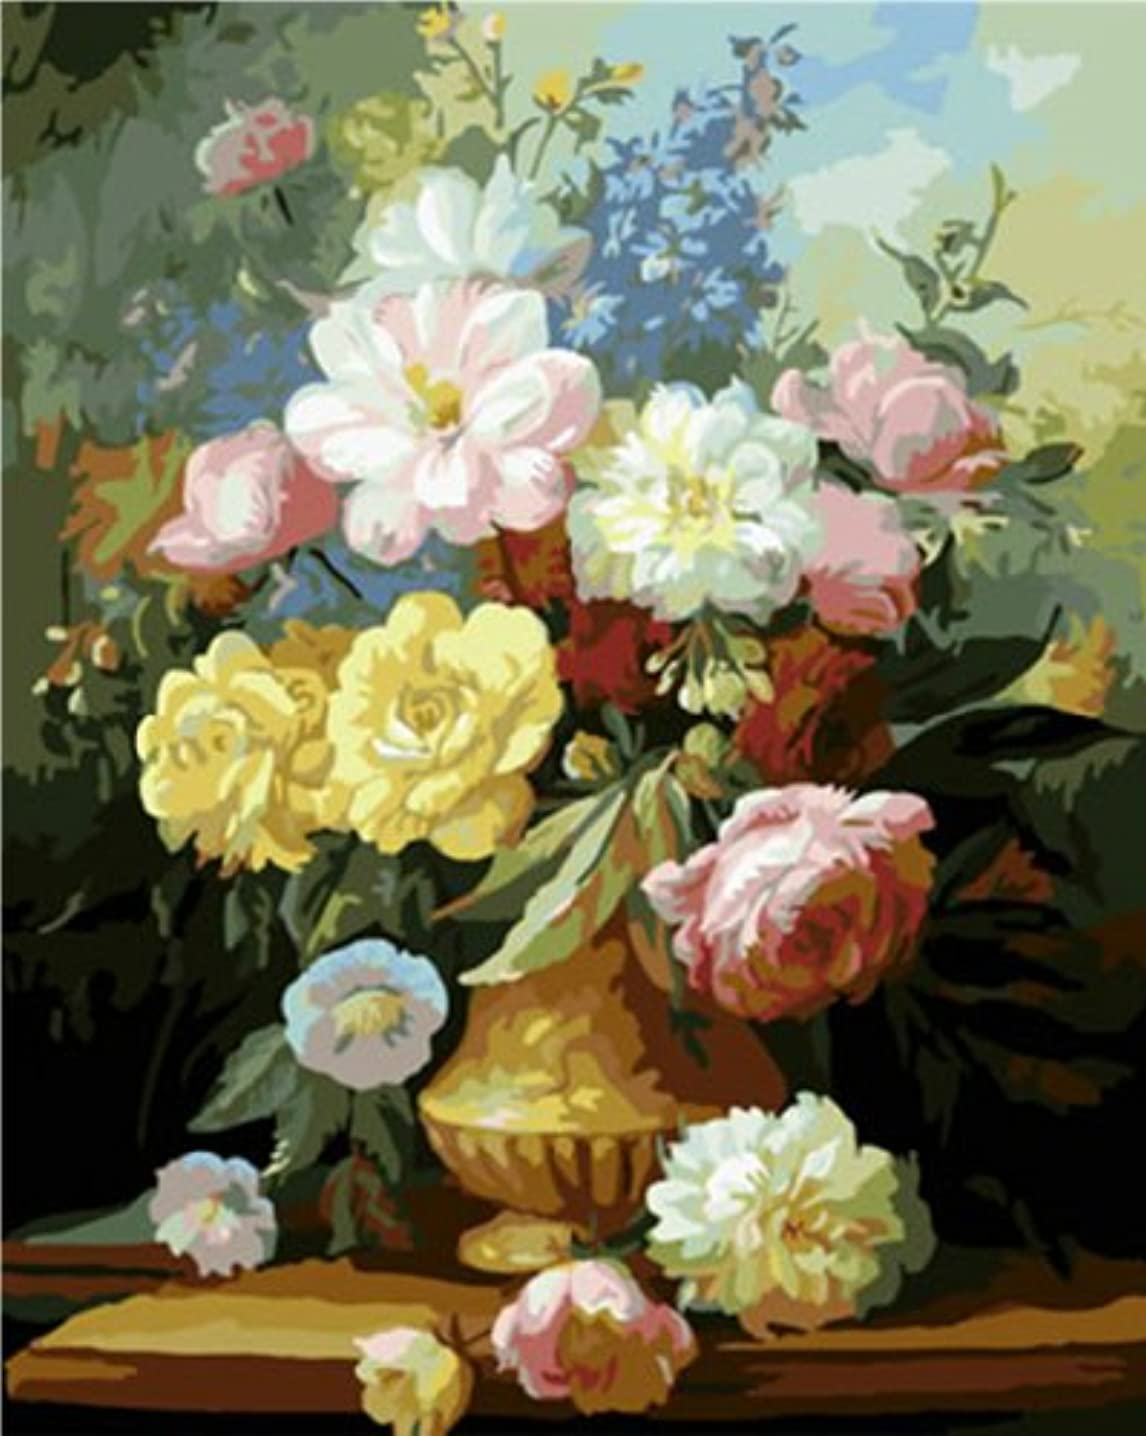 Diy oil painting, paint by number kit- Elegant Flowers 16x20 inch